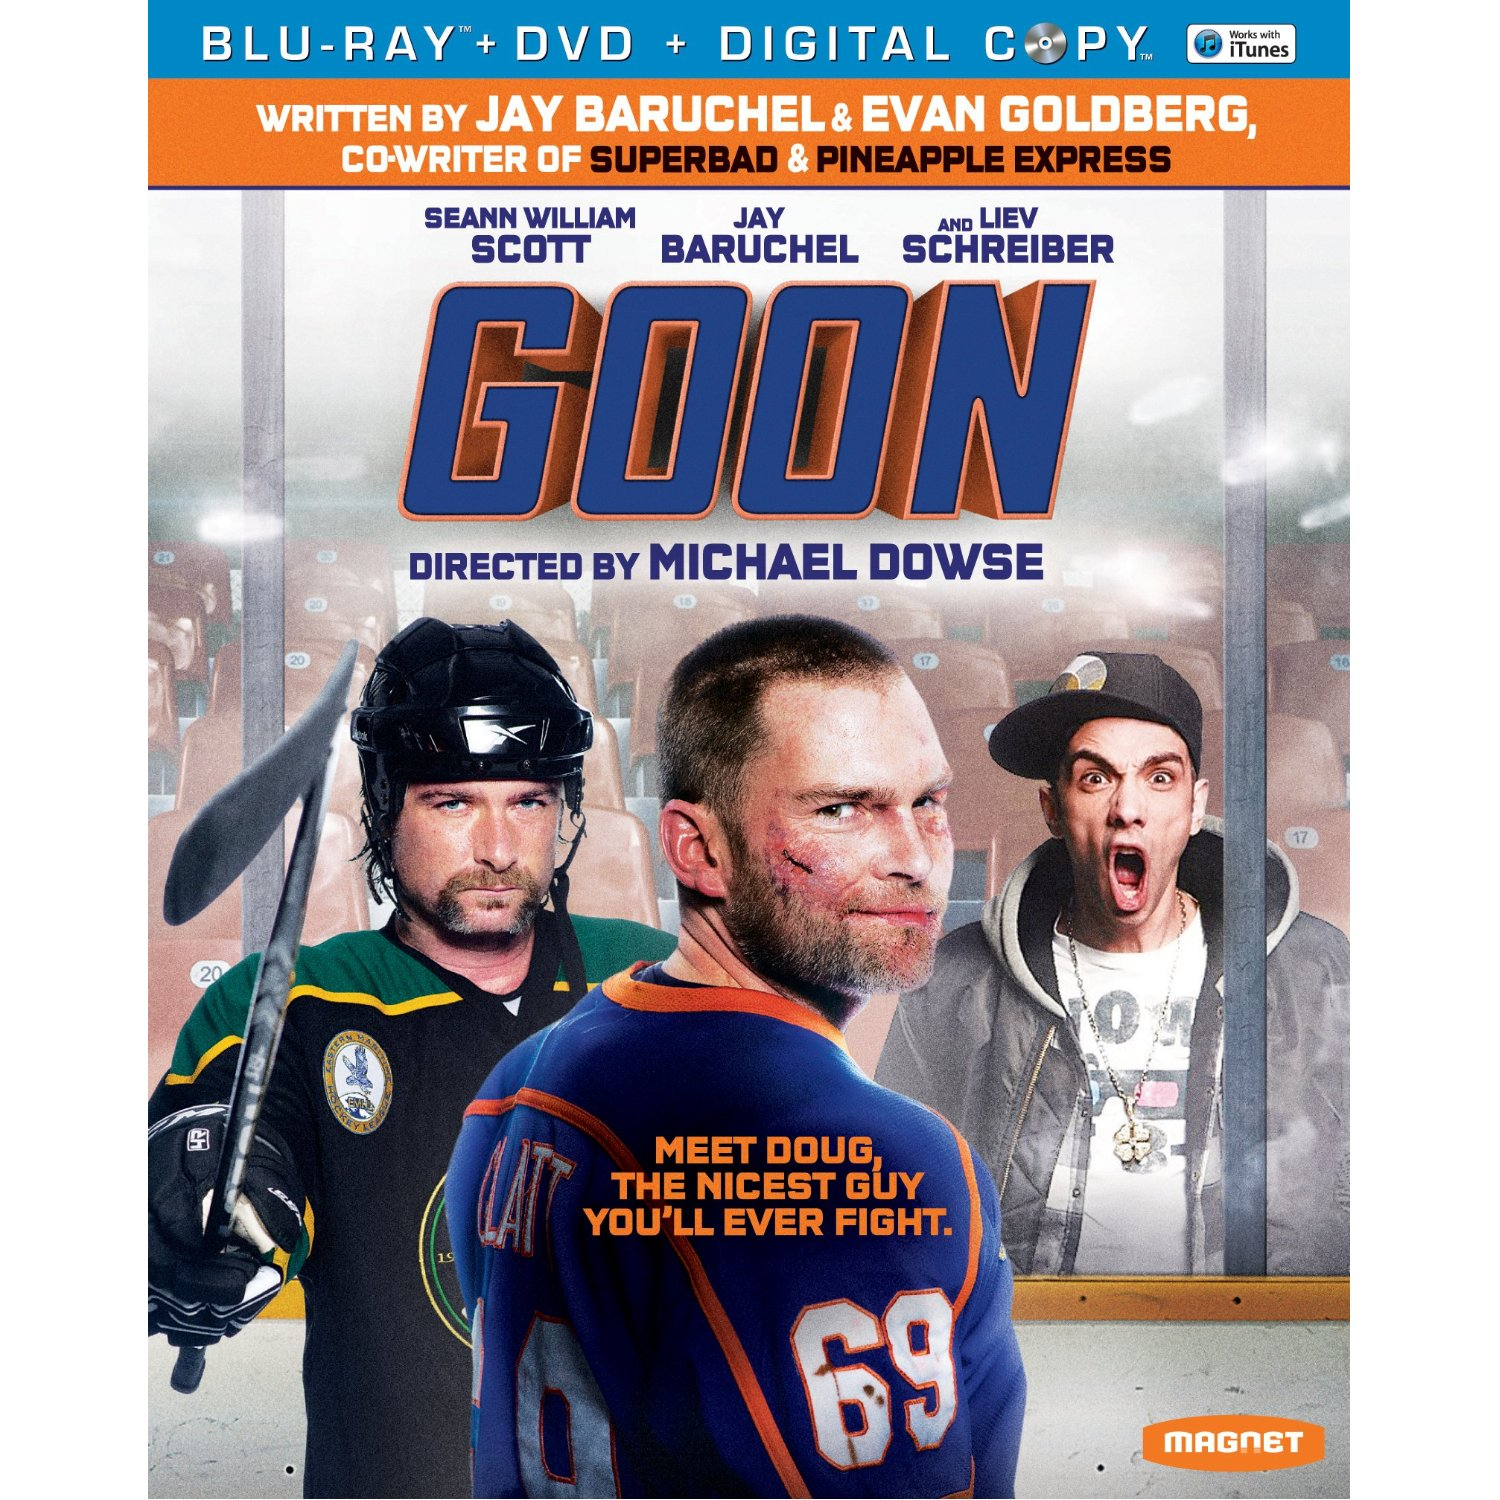 Disc Junkie: DVD and Blu-Ray Releases, May 29-June 4, 2012